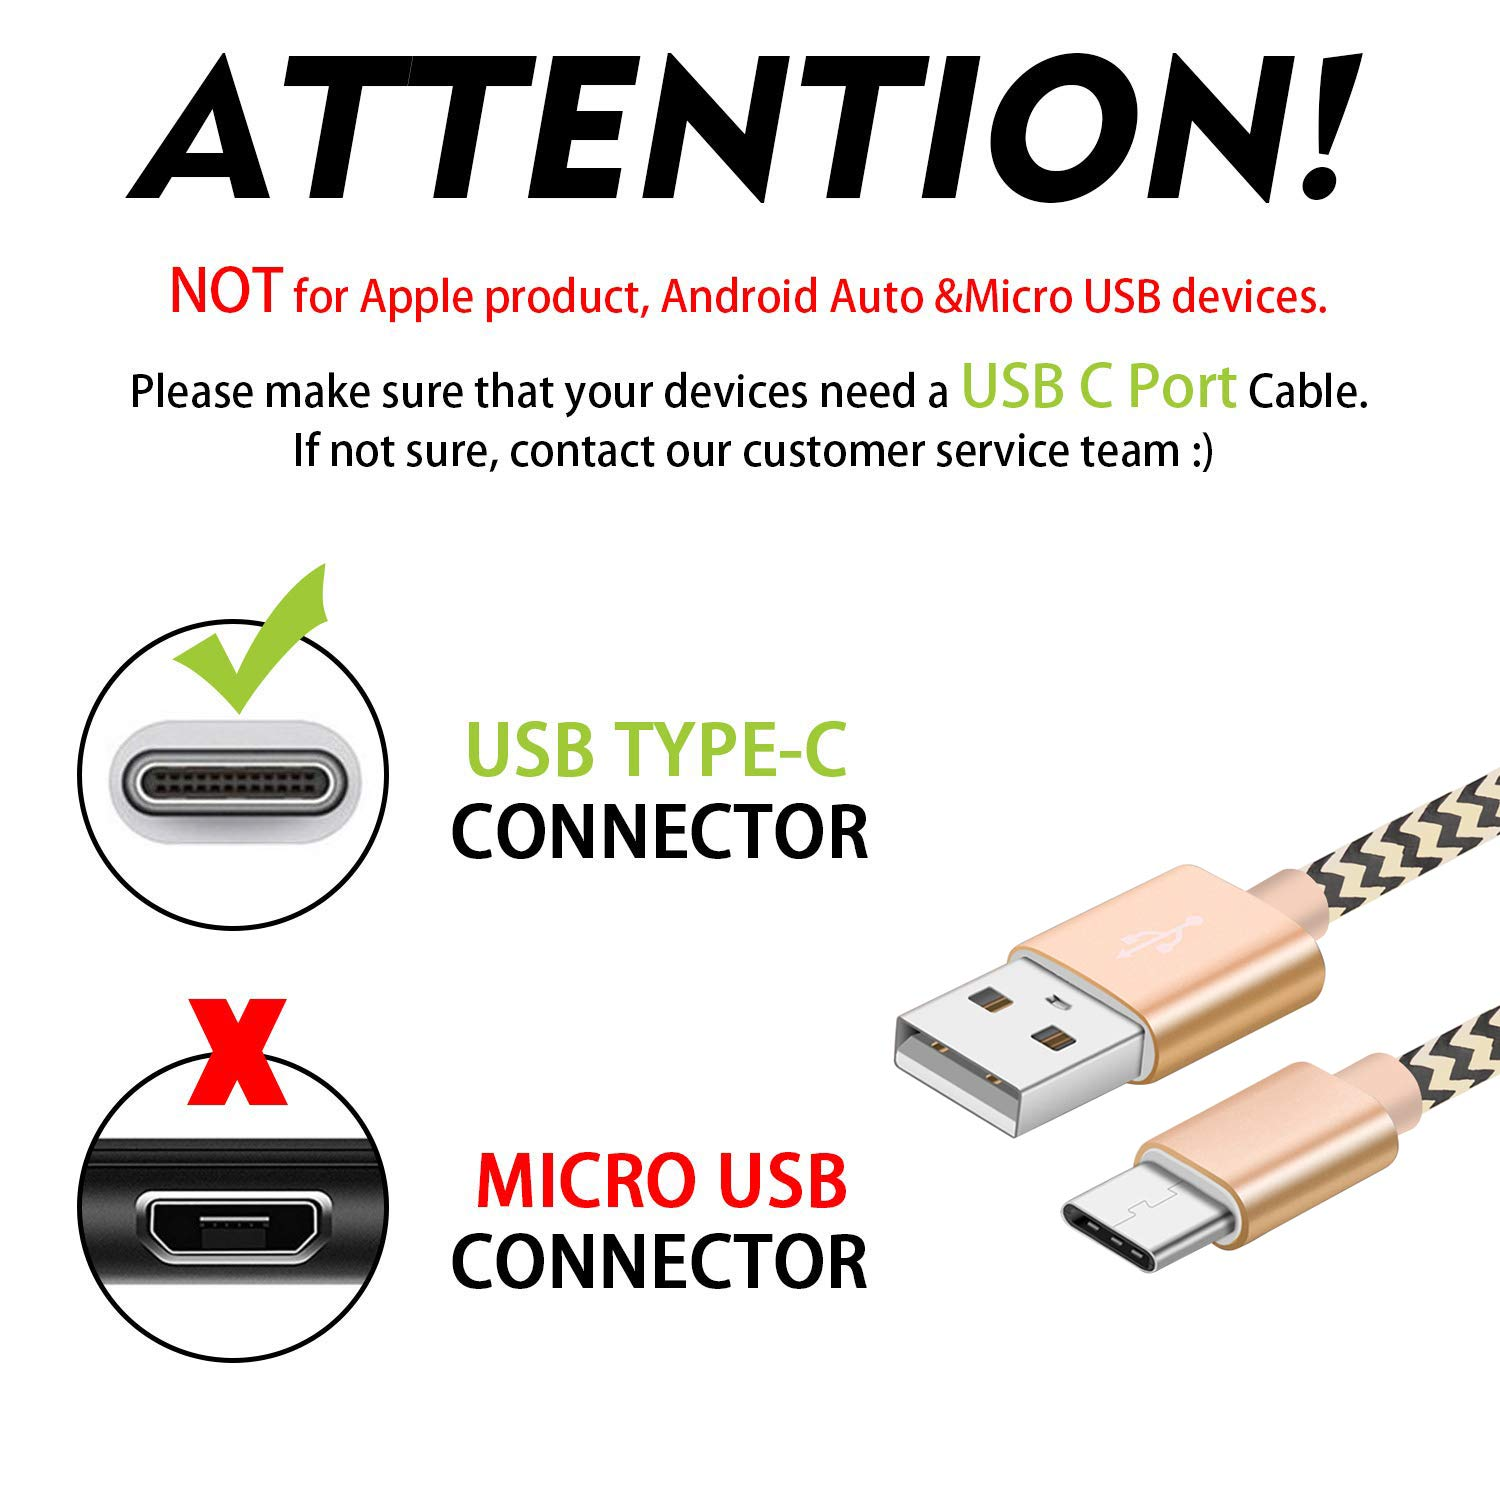 OTISA USB C Cable, 2Pack 6ft USB Type C Cable Fast Charging Charger Cord Long Android Nylon Charge Cable for Galaxy S9 S8 Note 9 8 Pixel Nintendo Switch Huawei Mate P9 P10 Honor LG BLU Moto Gold Grey